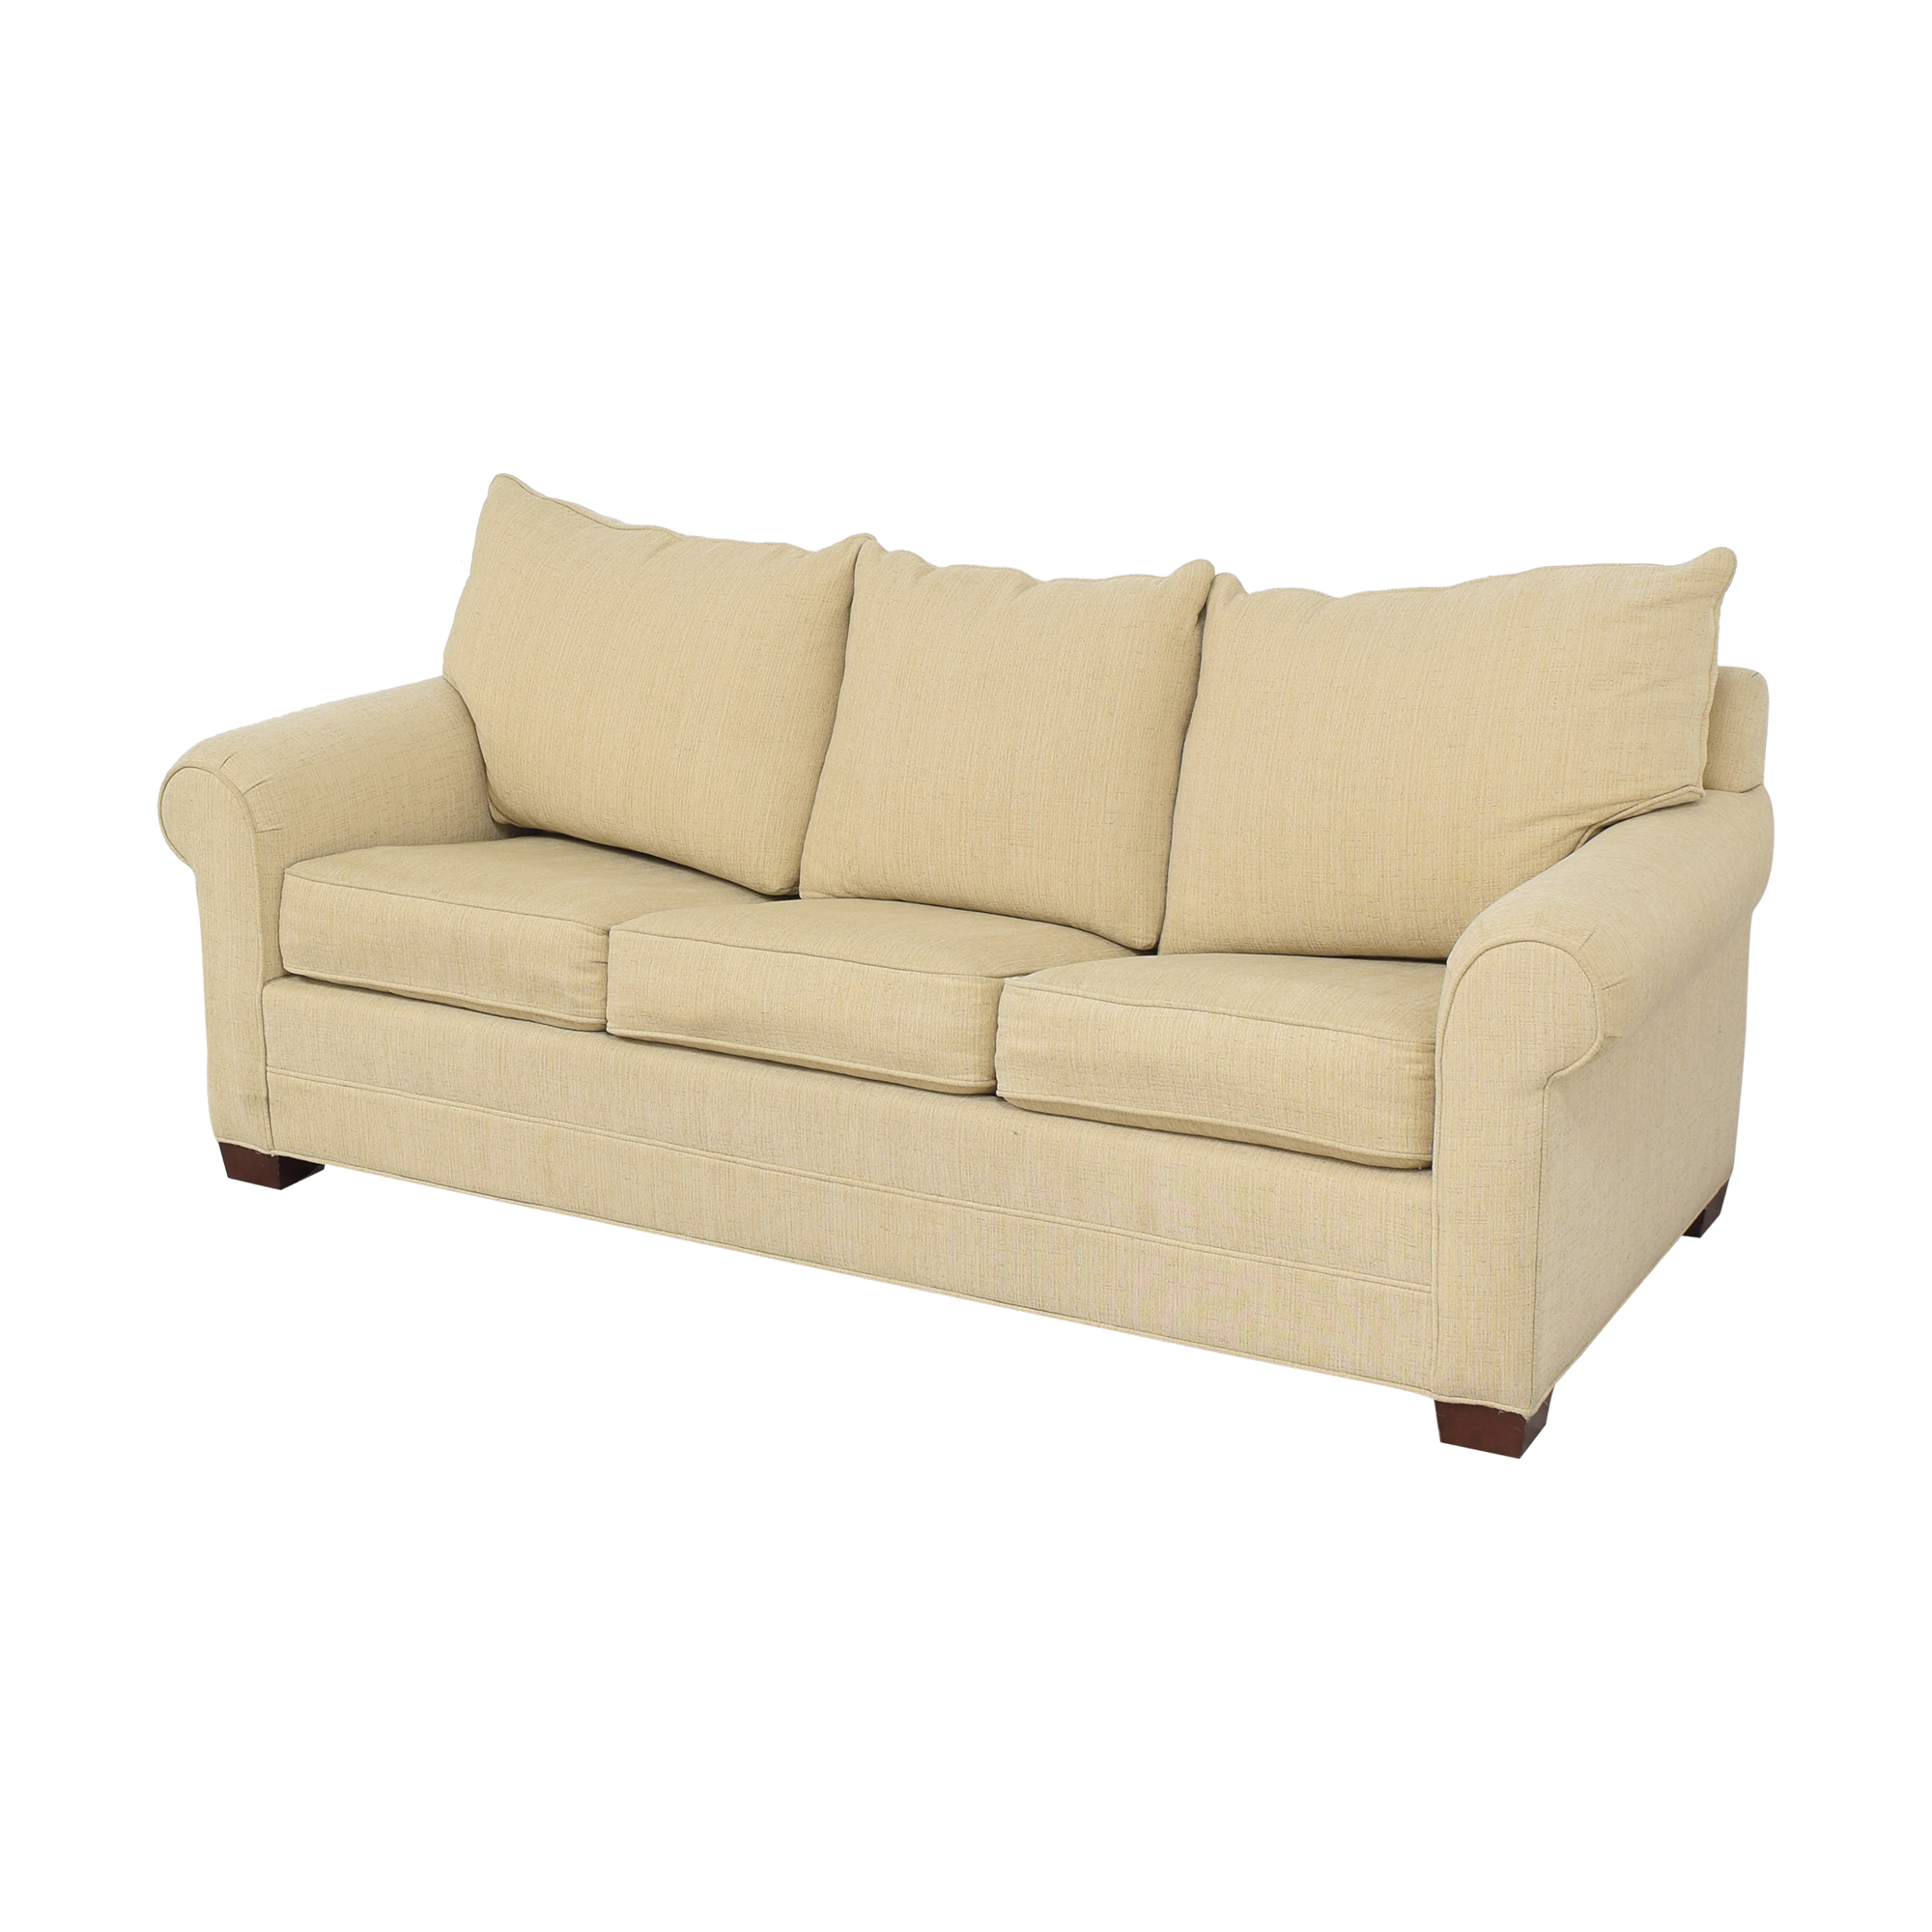 Huntington House Huntington House Roll Arm Sleeper Sofa tan